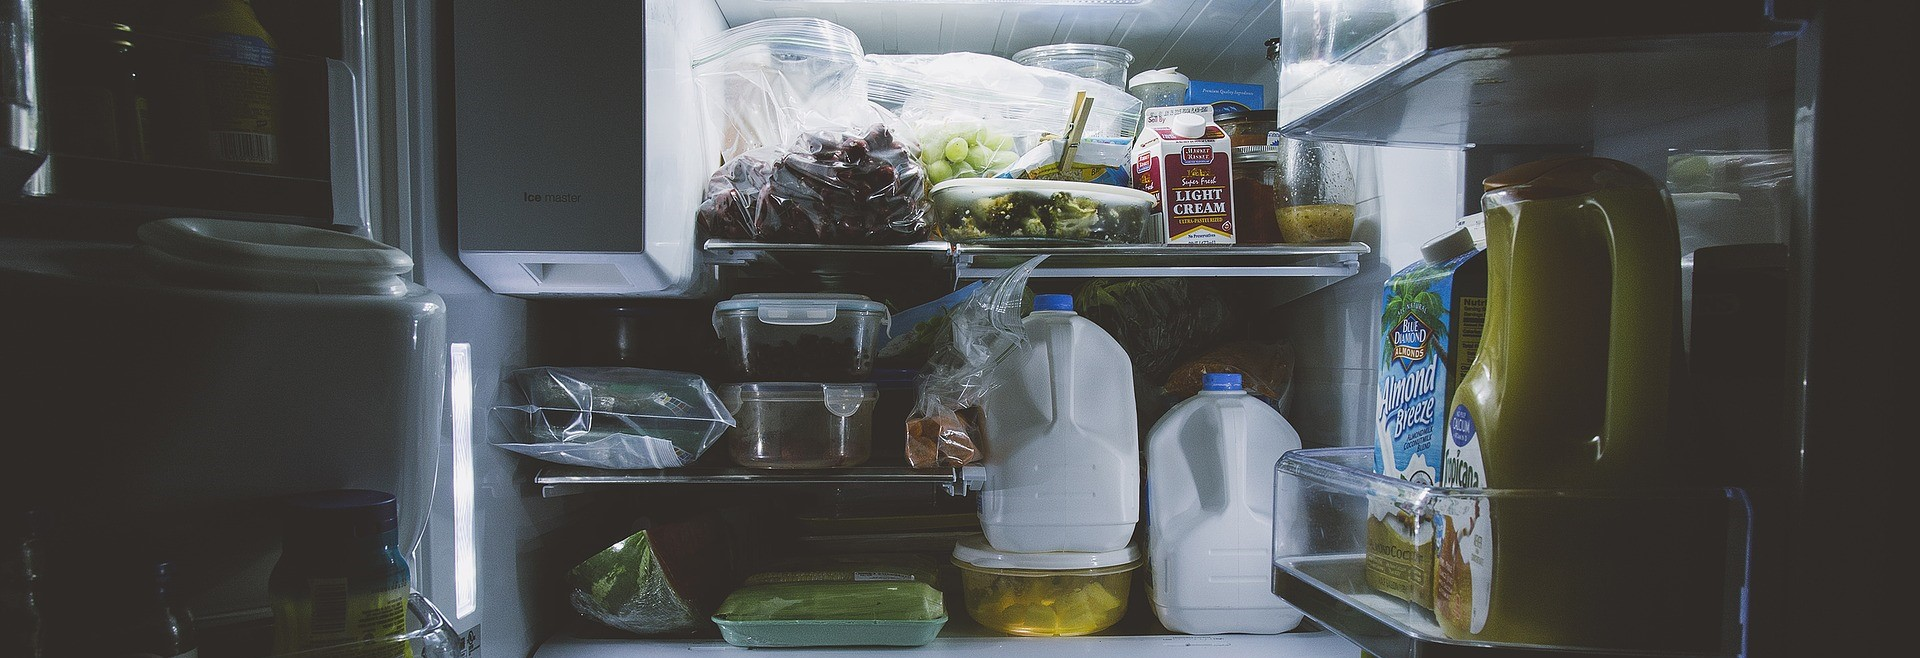 Refrigerator Cleaning   Breast Cancer Car Donations